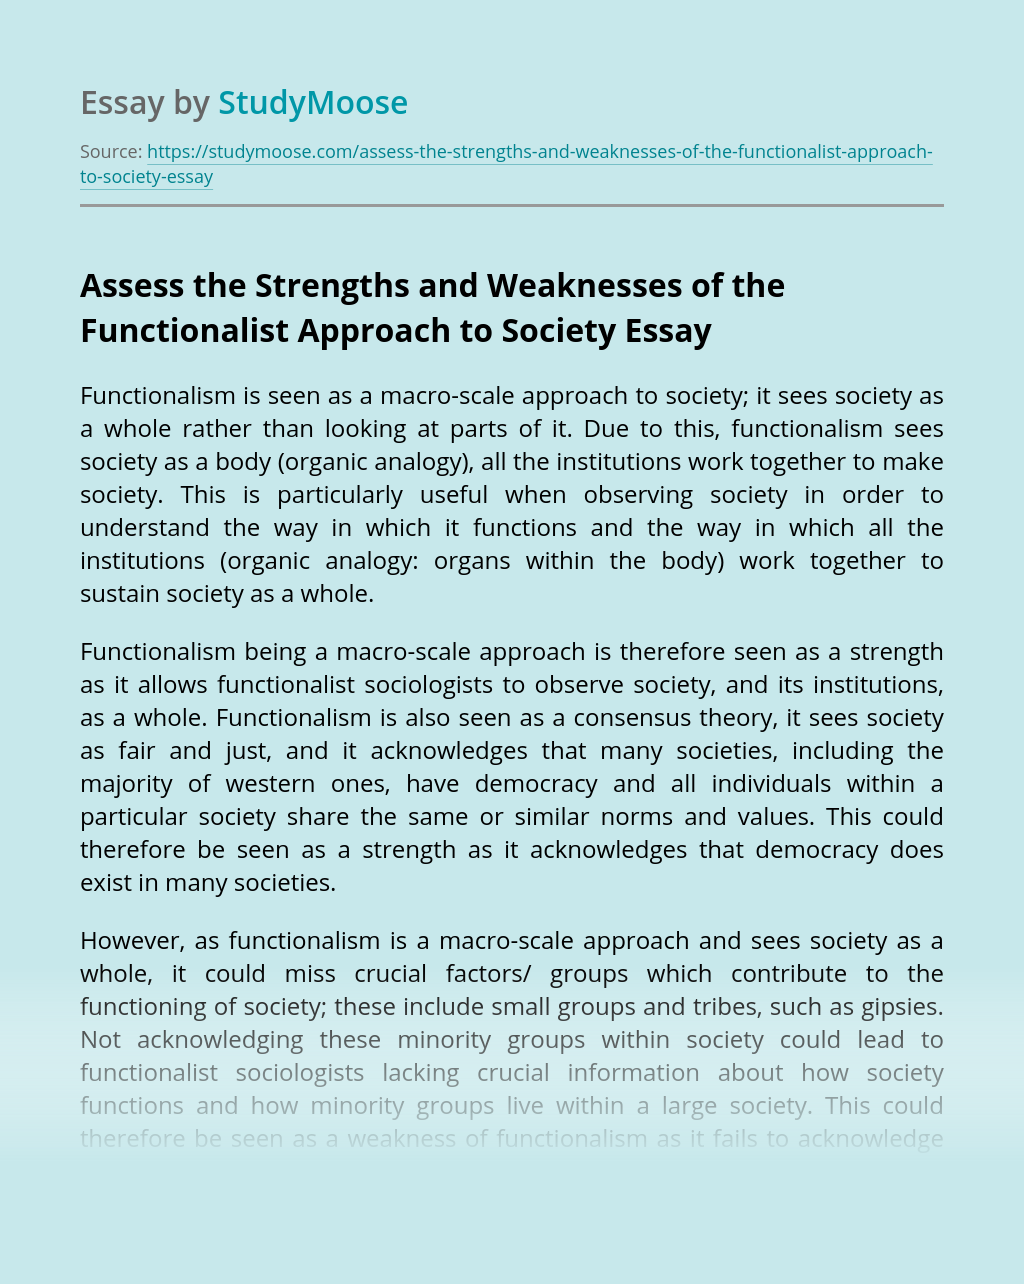 Assess the Strengths and Weaknesses of the Functionalist Approach to Society